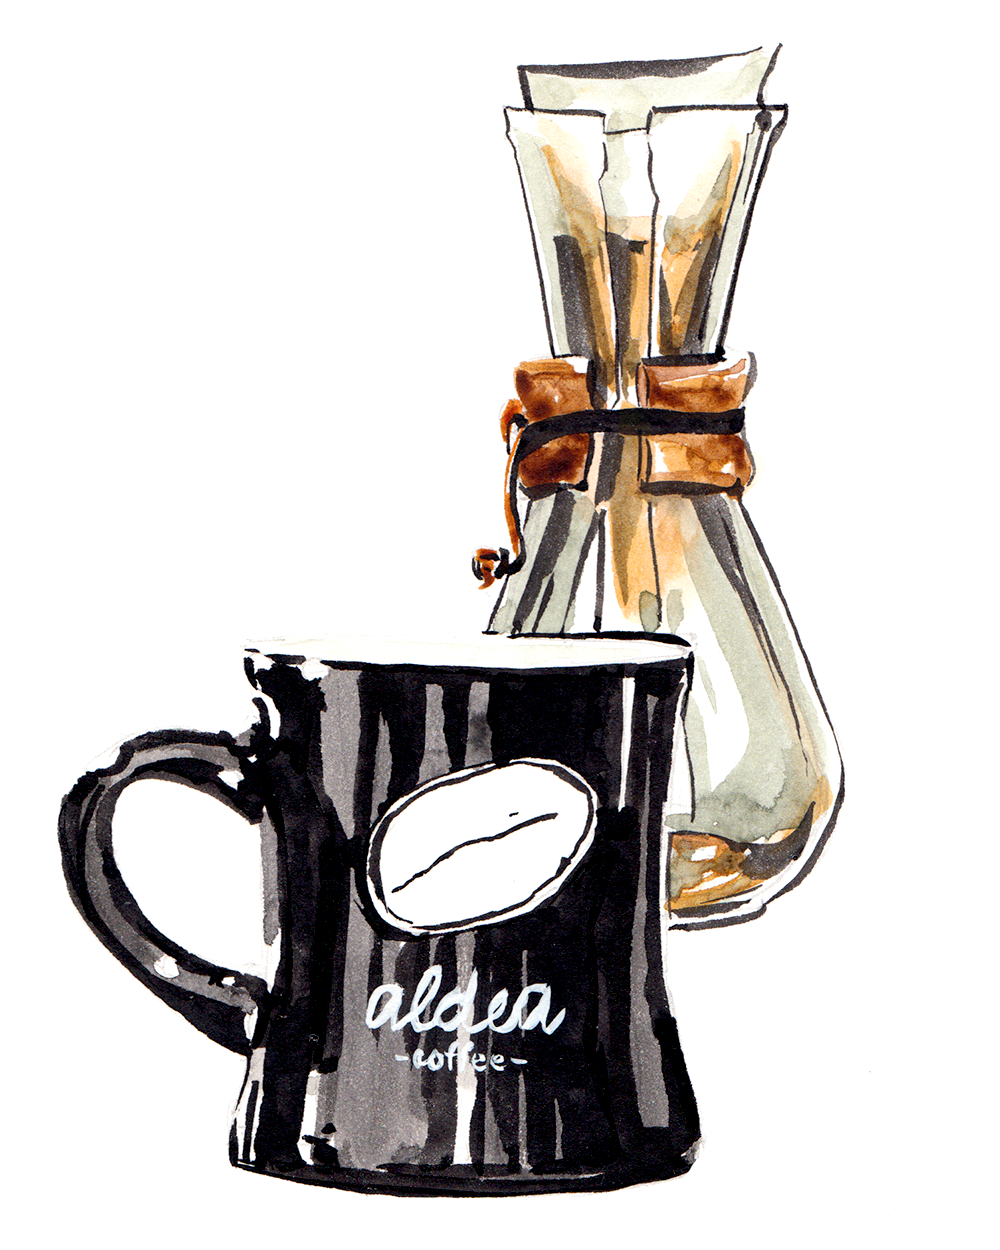 Aldea Coffee watercolor illustration